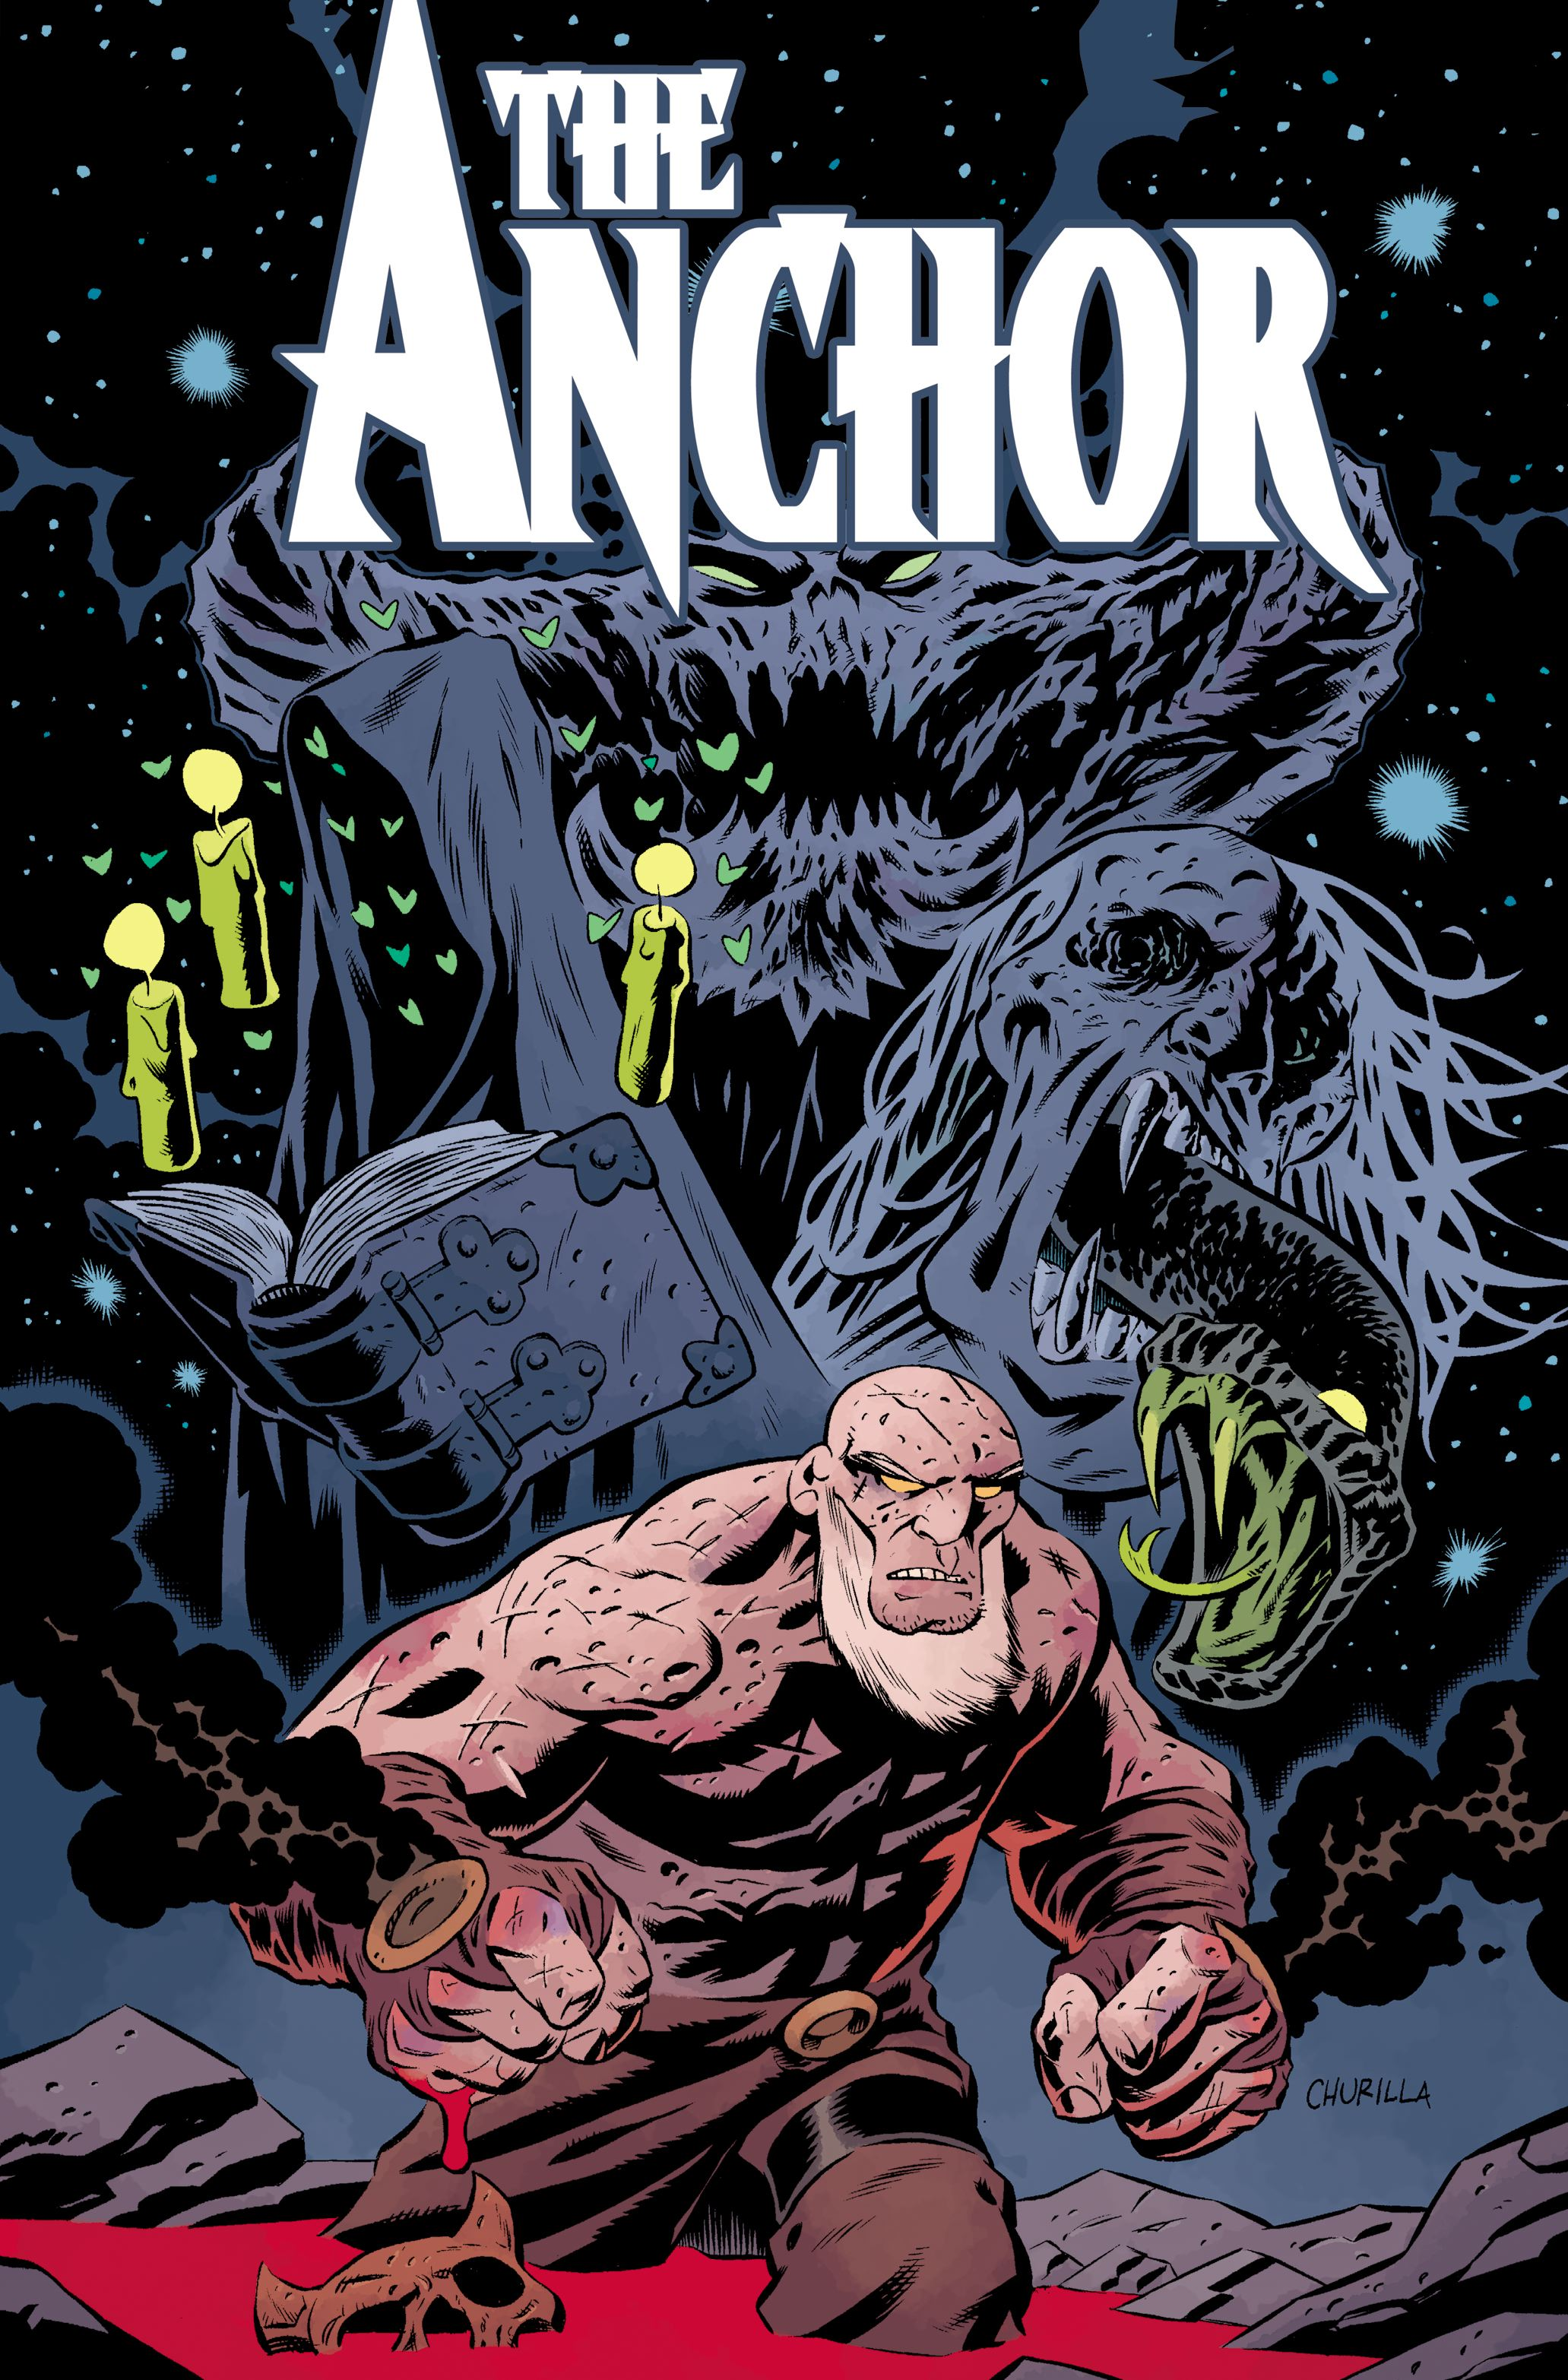 The-anchor-vol-1-9781608860203_hr